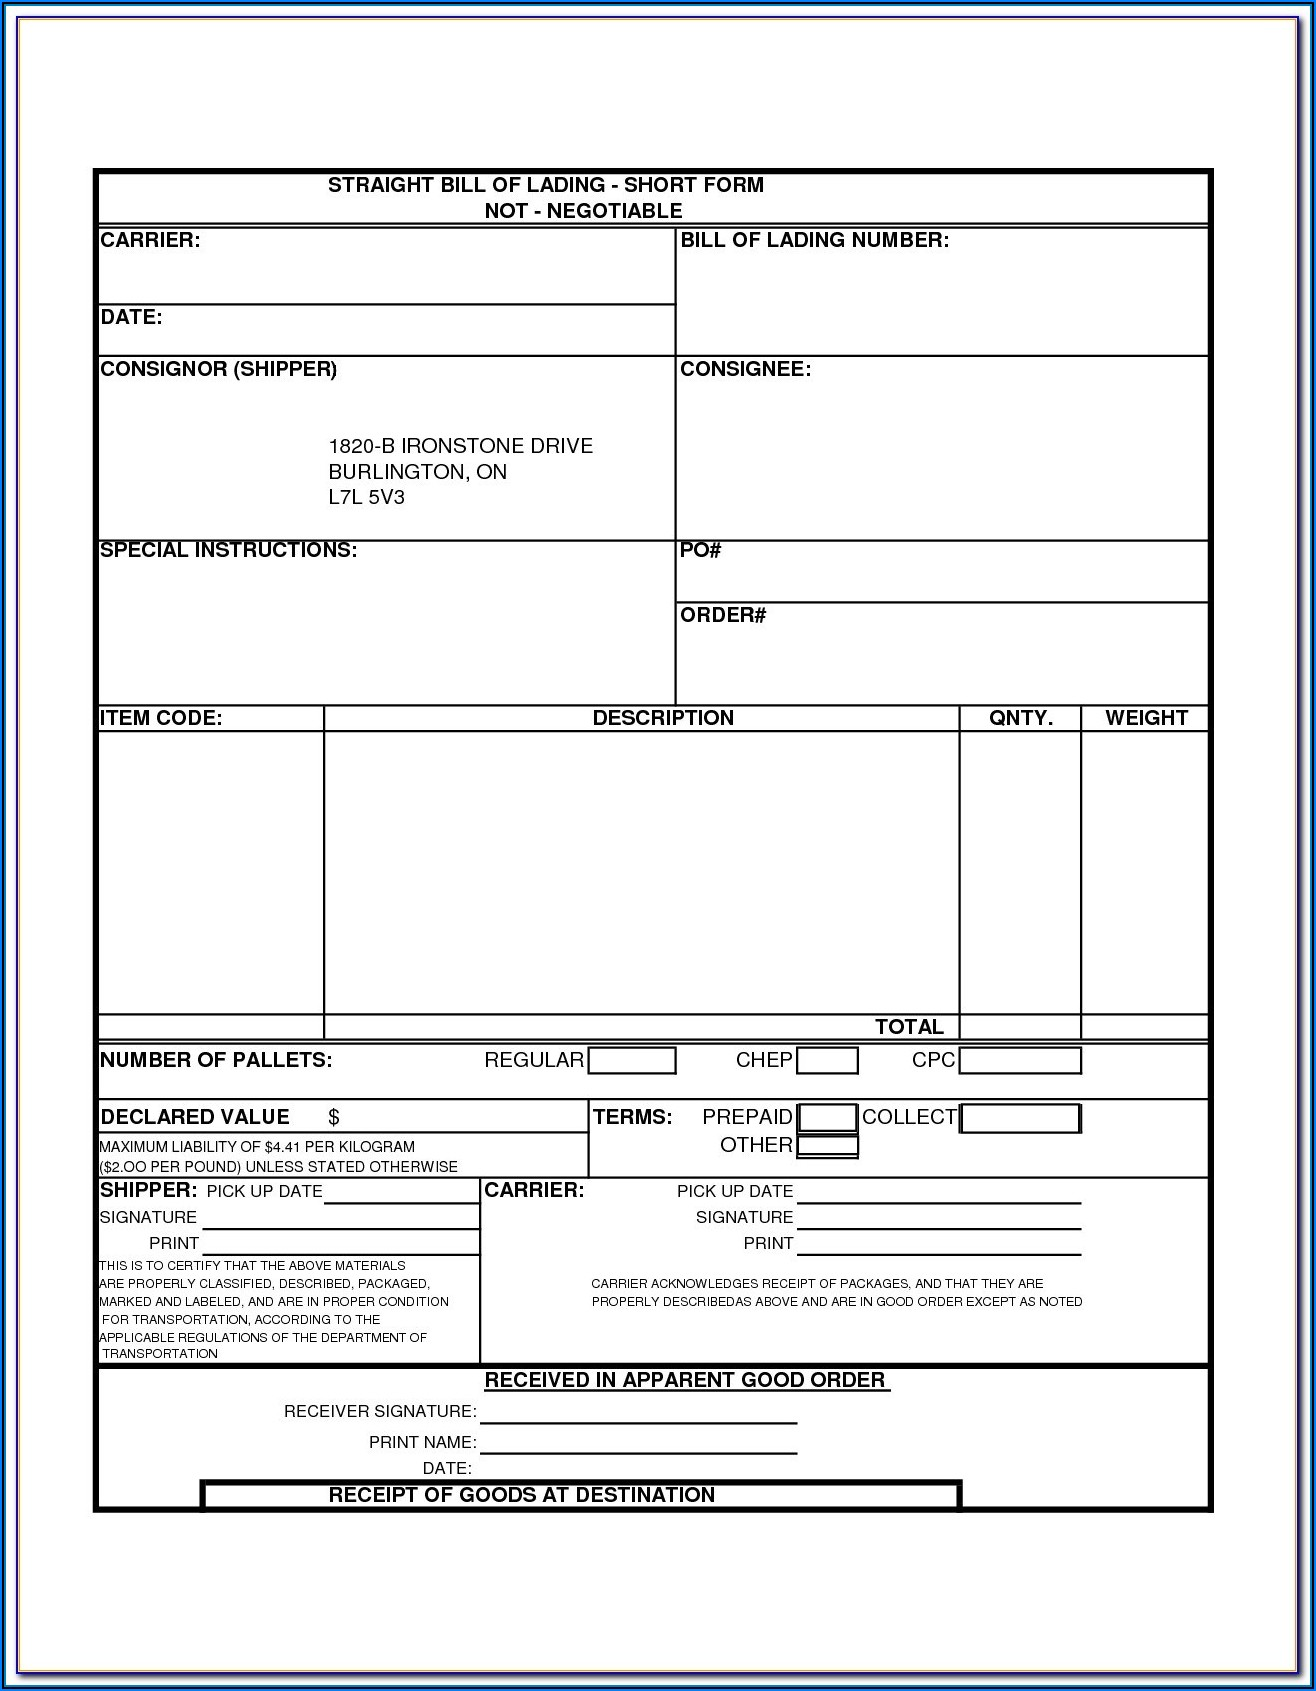 Ups Printable Bill Of Lading Form